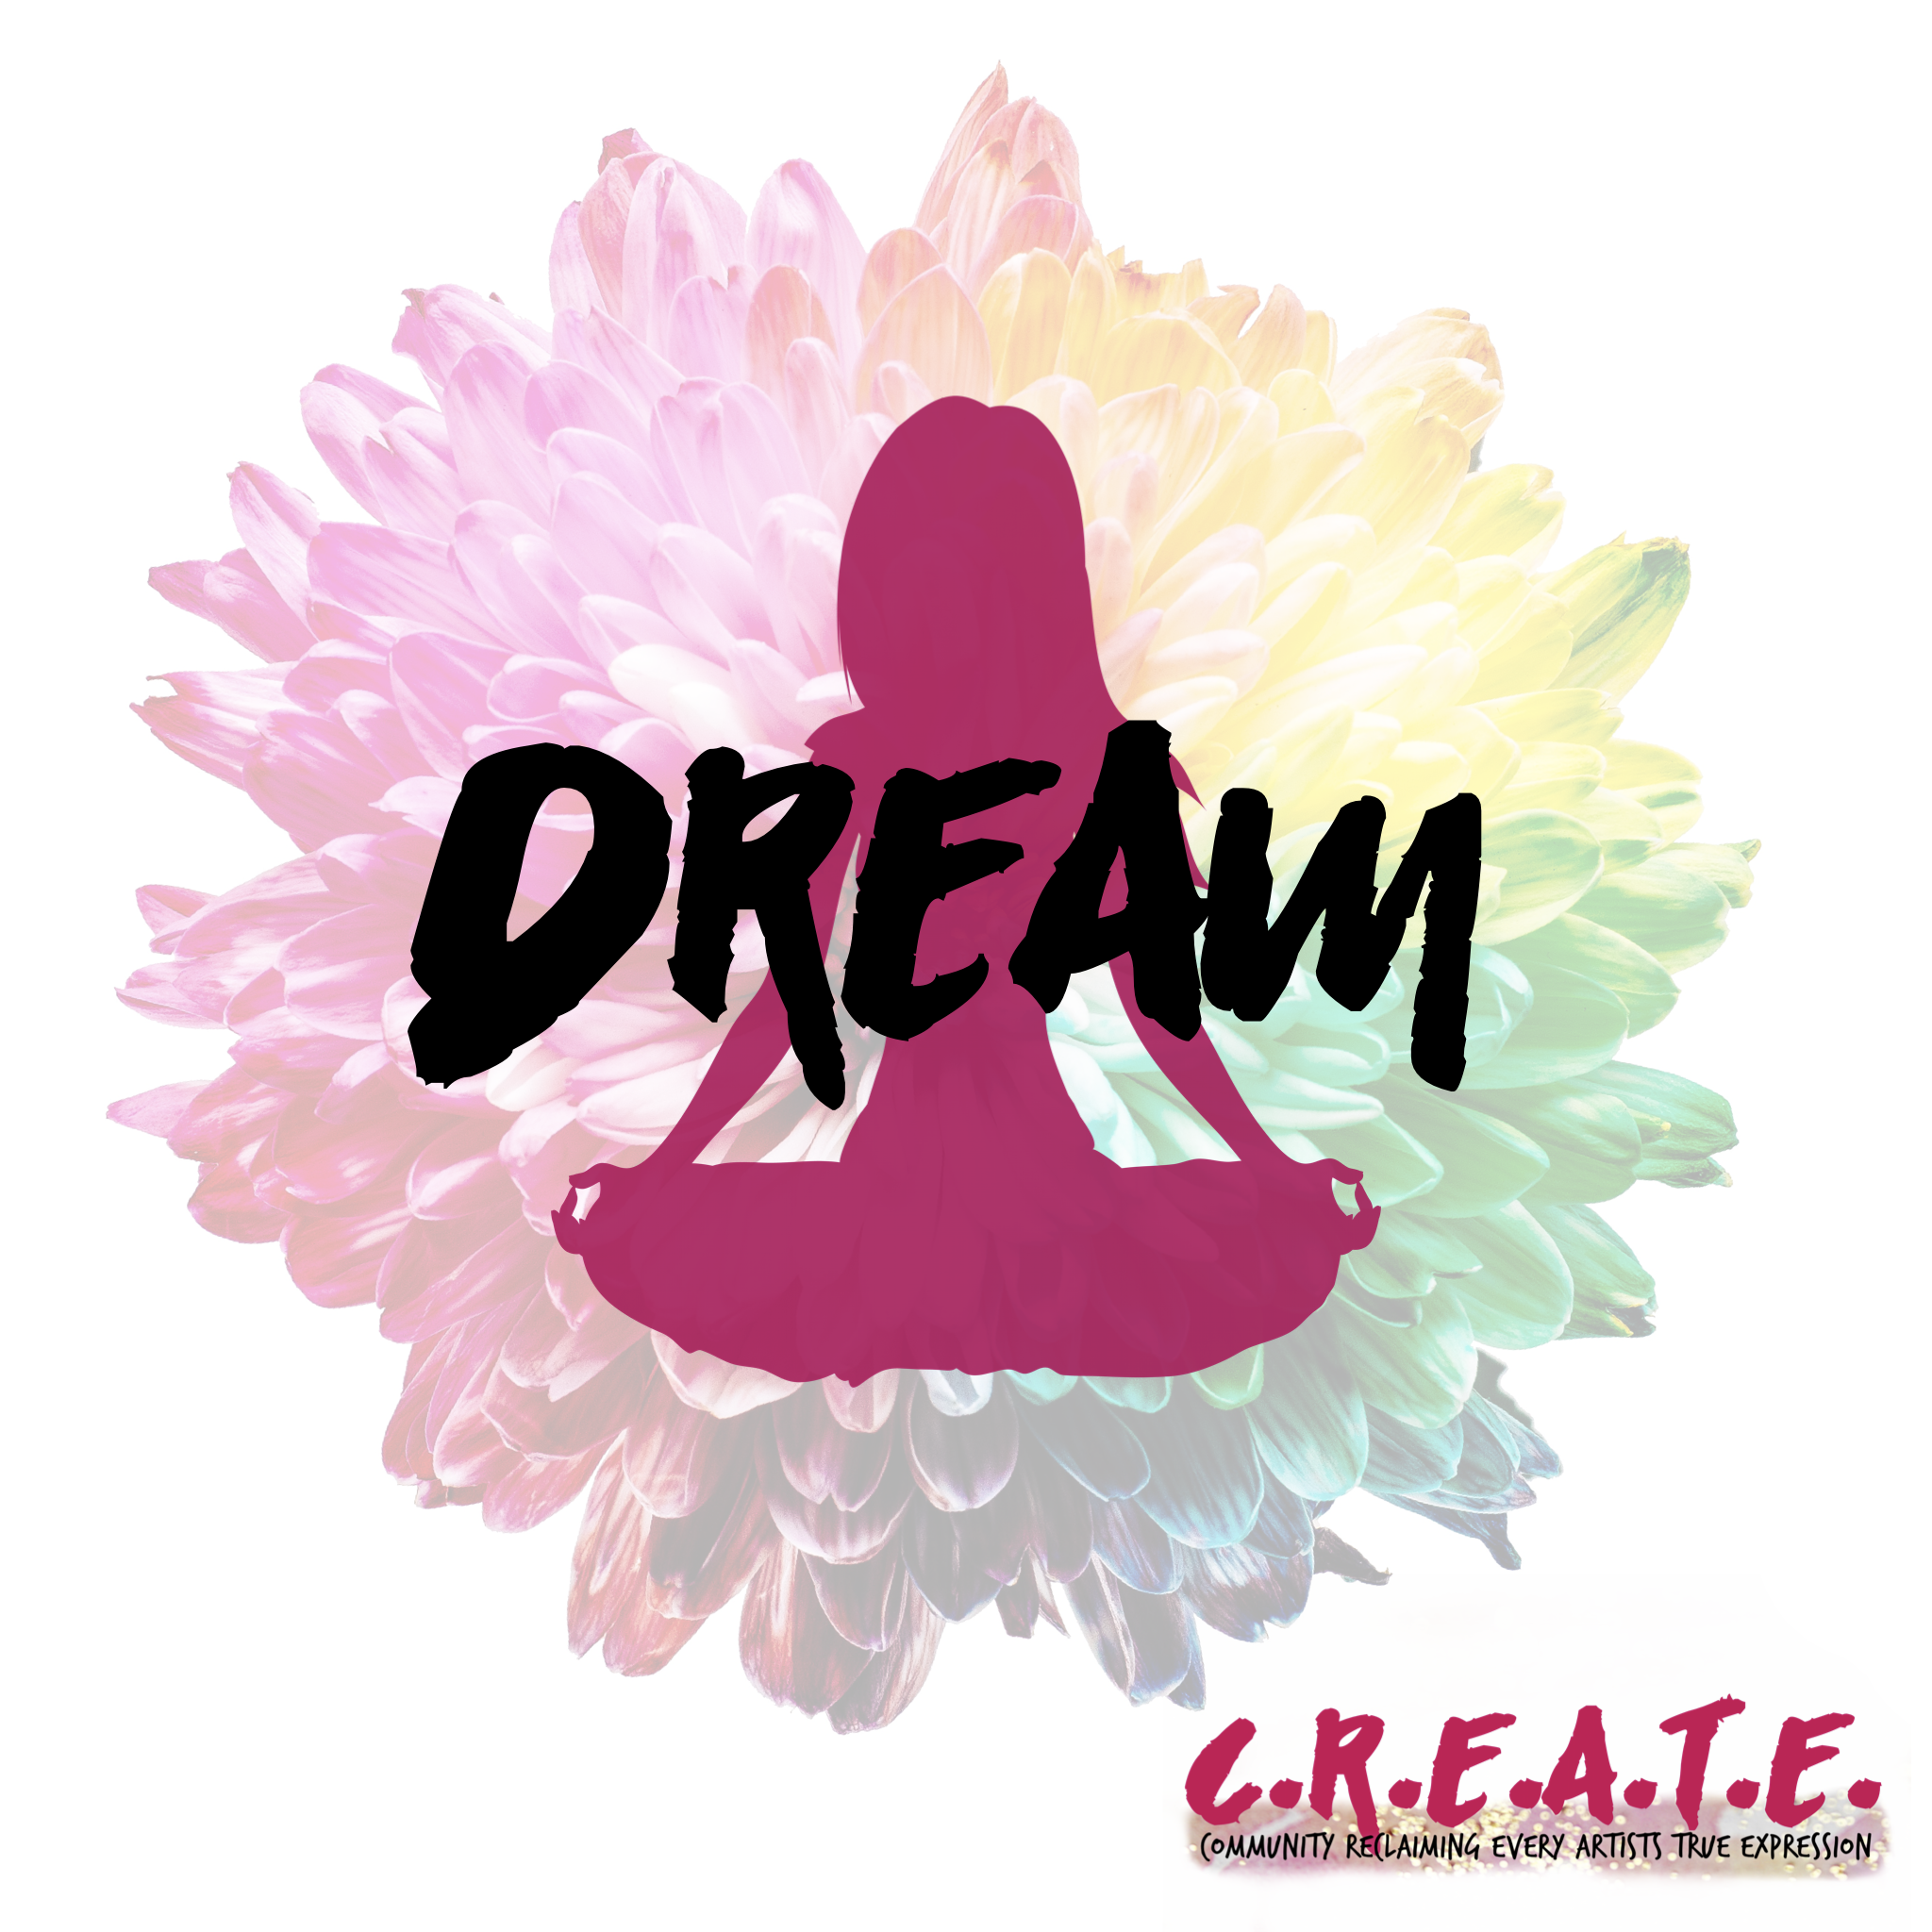 Dream - $1.99 - Click Image To Purchase!